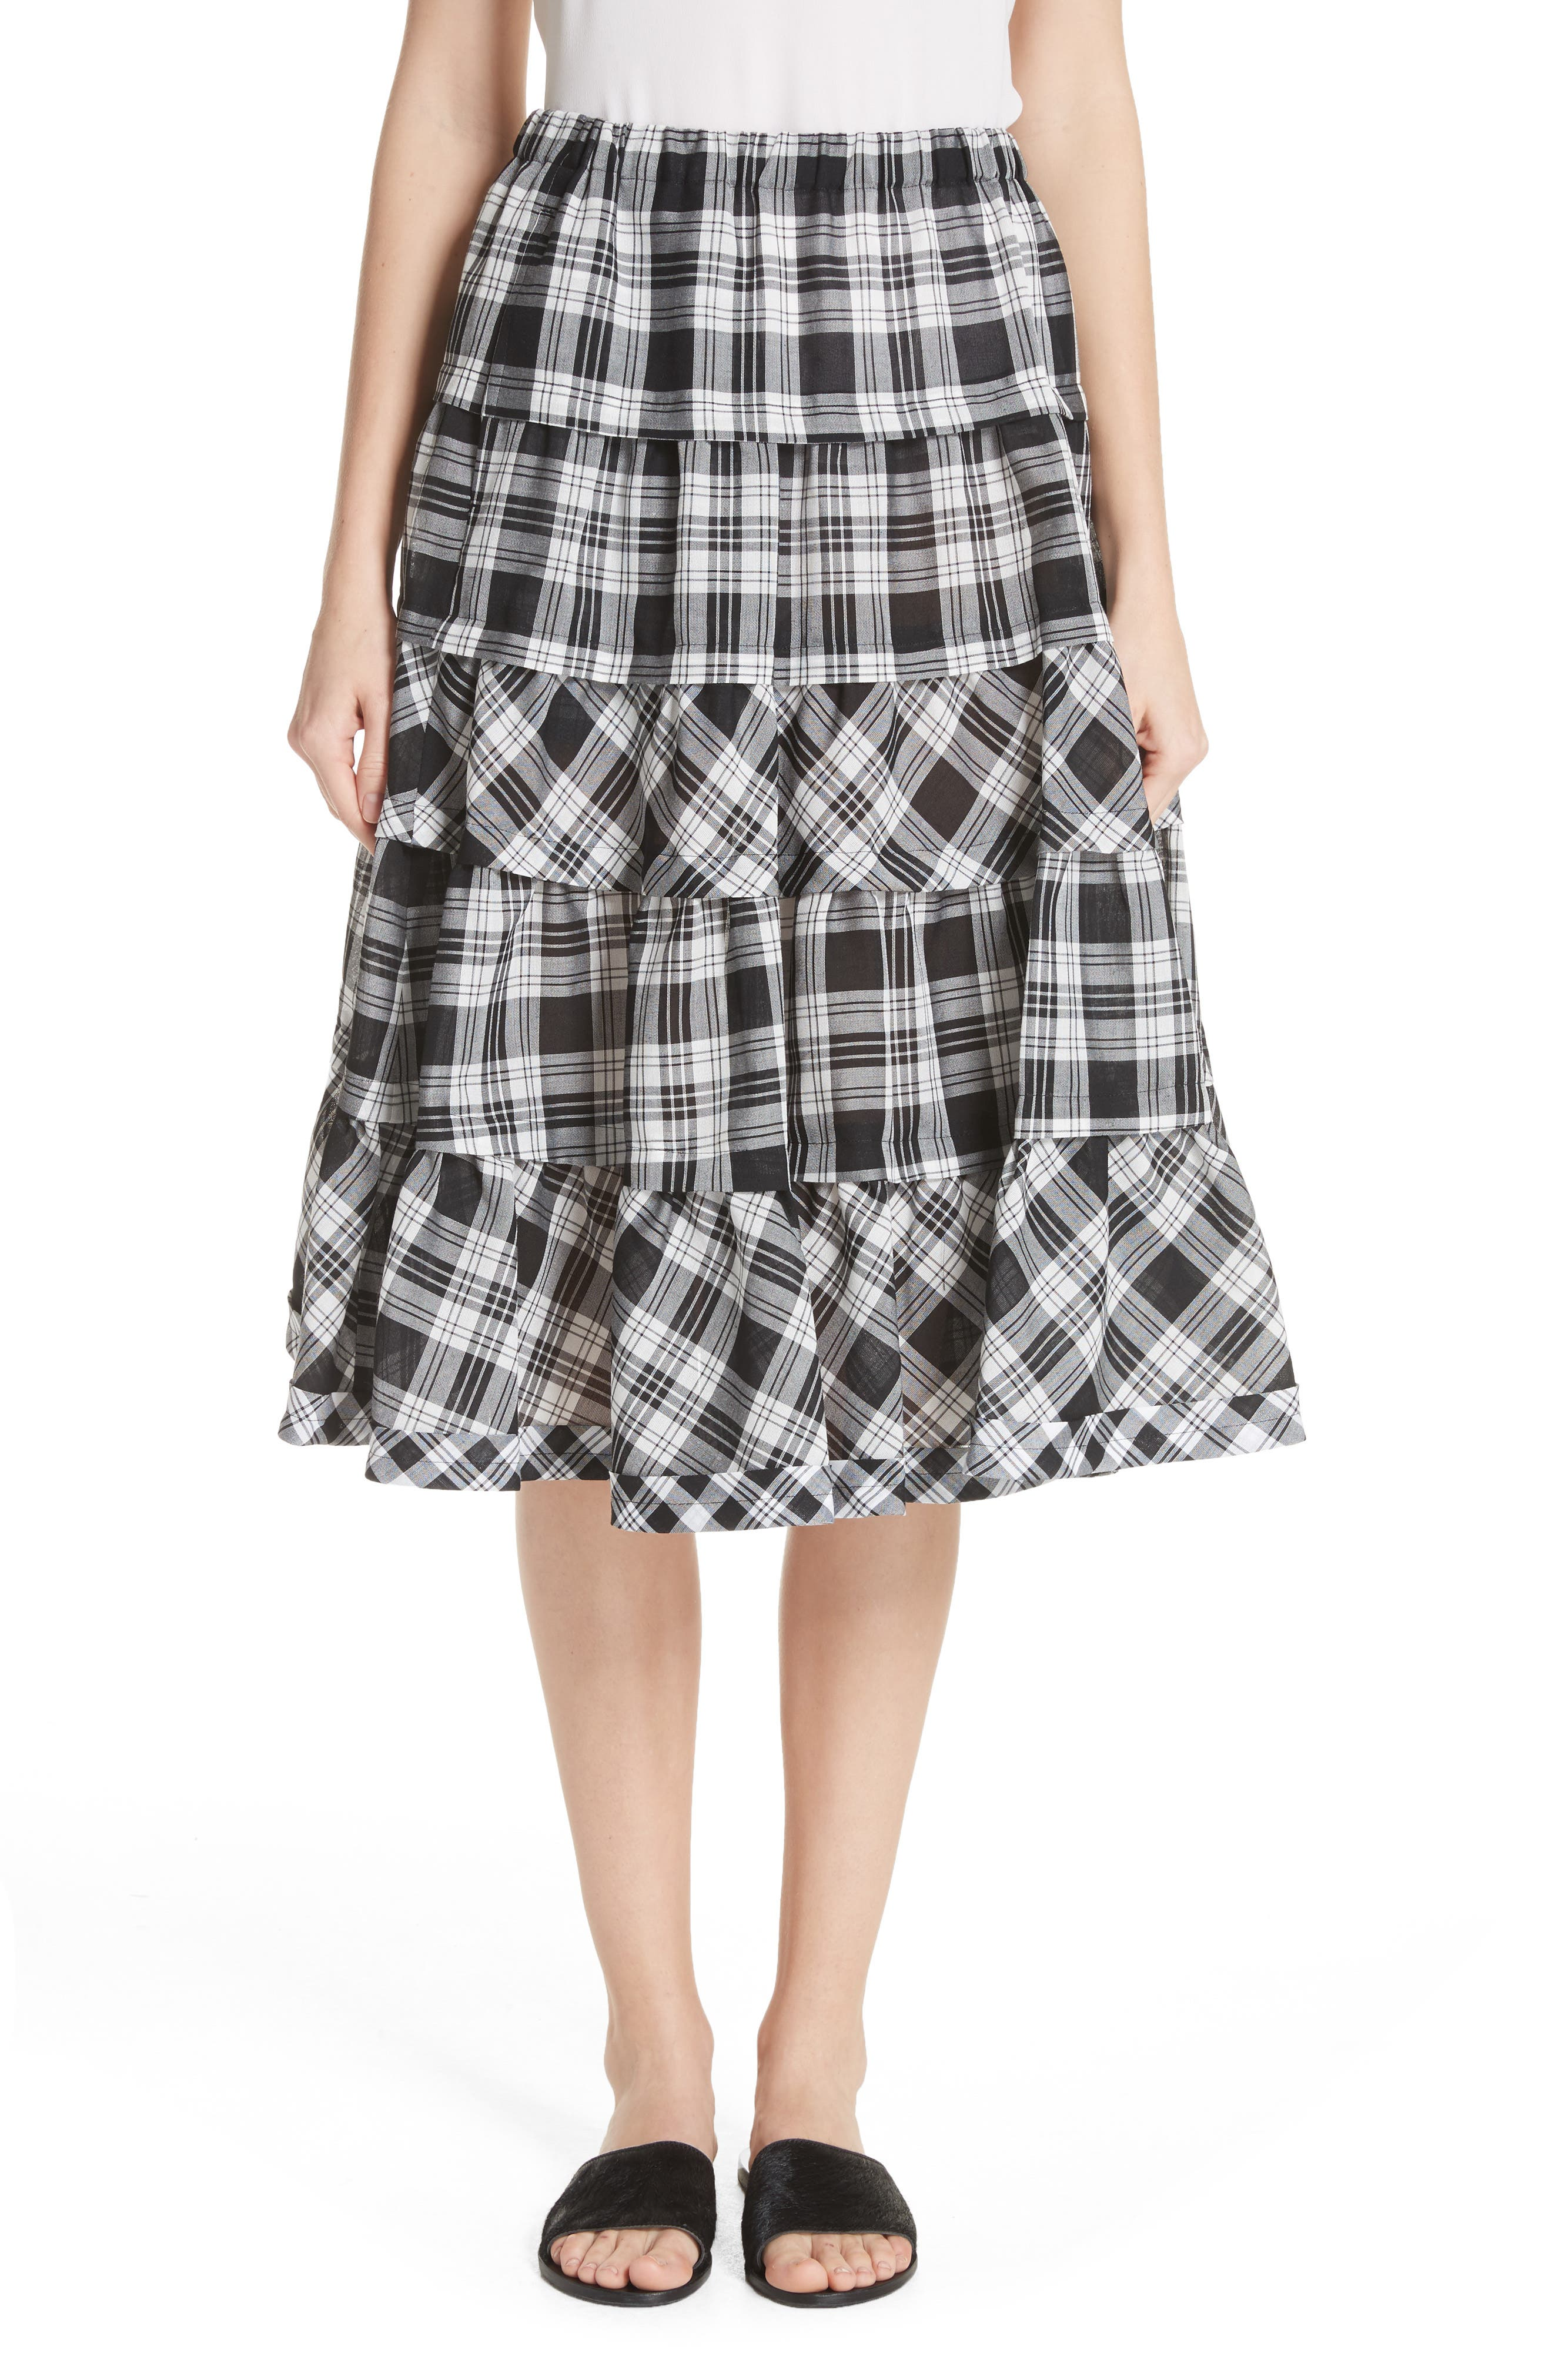 TRICOT COMME DES GARCONS TIERED PLAID SKIRT